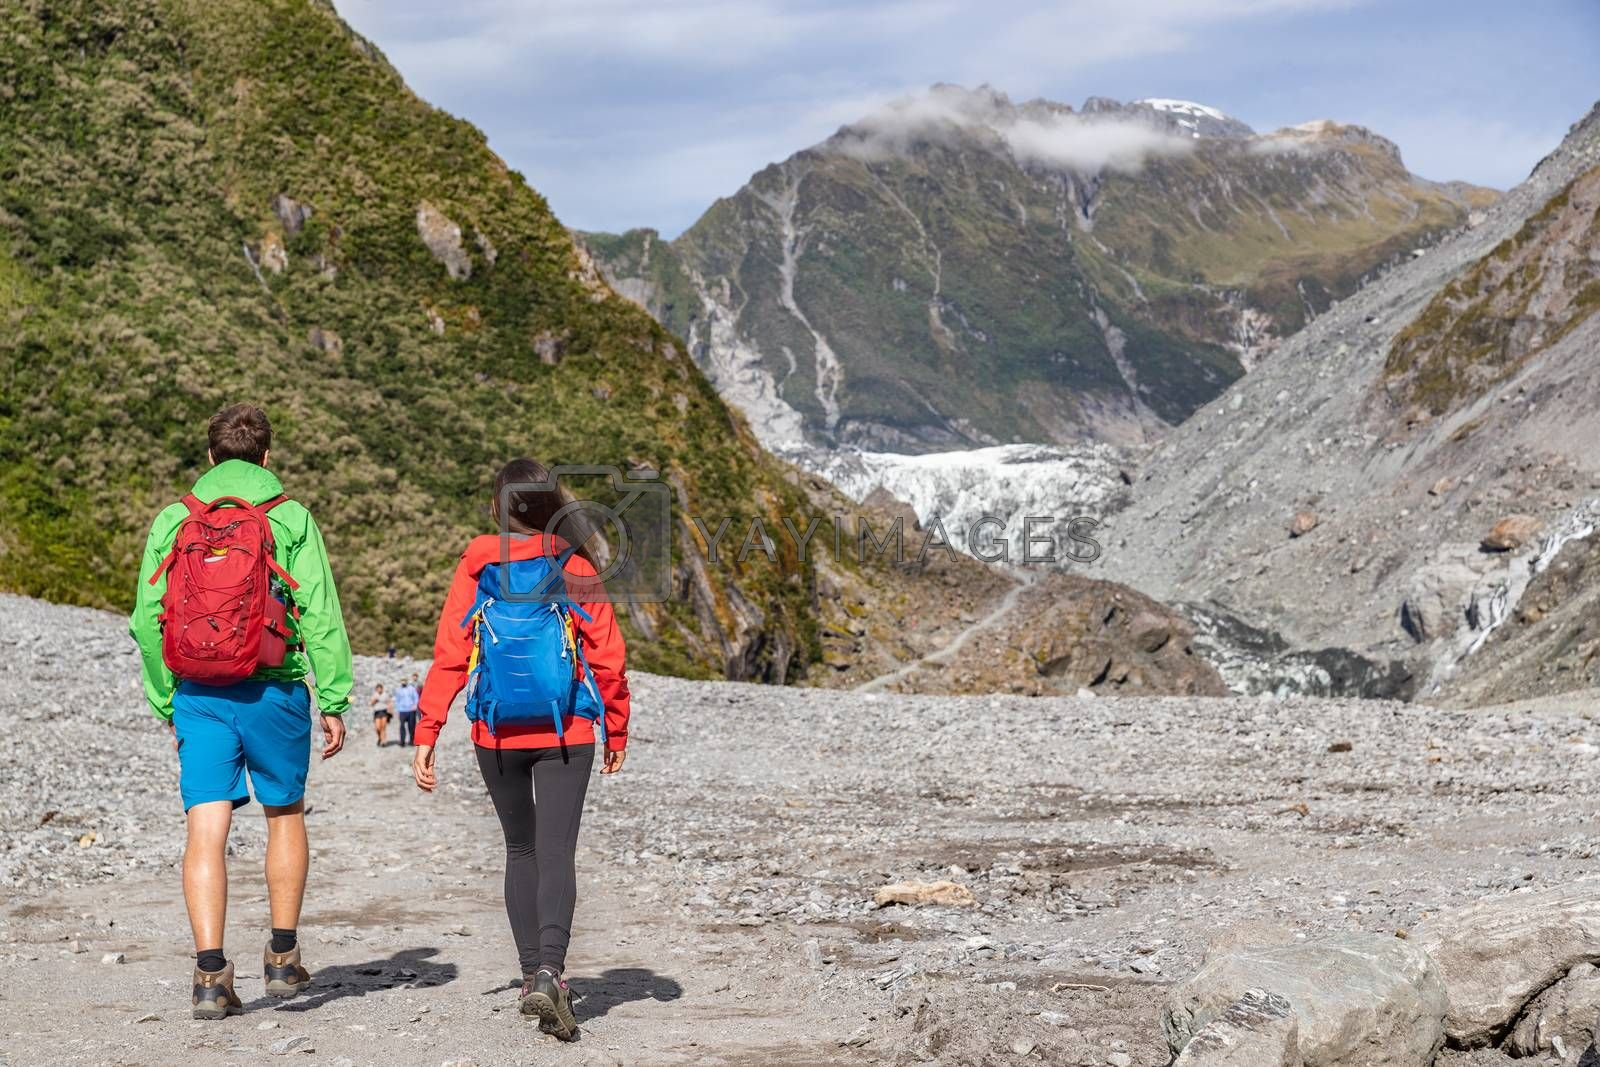 New Zealand tourists backpacking in nature landscape by Franz Josef Glacier, Westland Tai Poutini National Park, South Island, New Zealand. Couple on travel arriving at famous viewpoint.